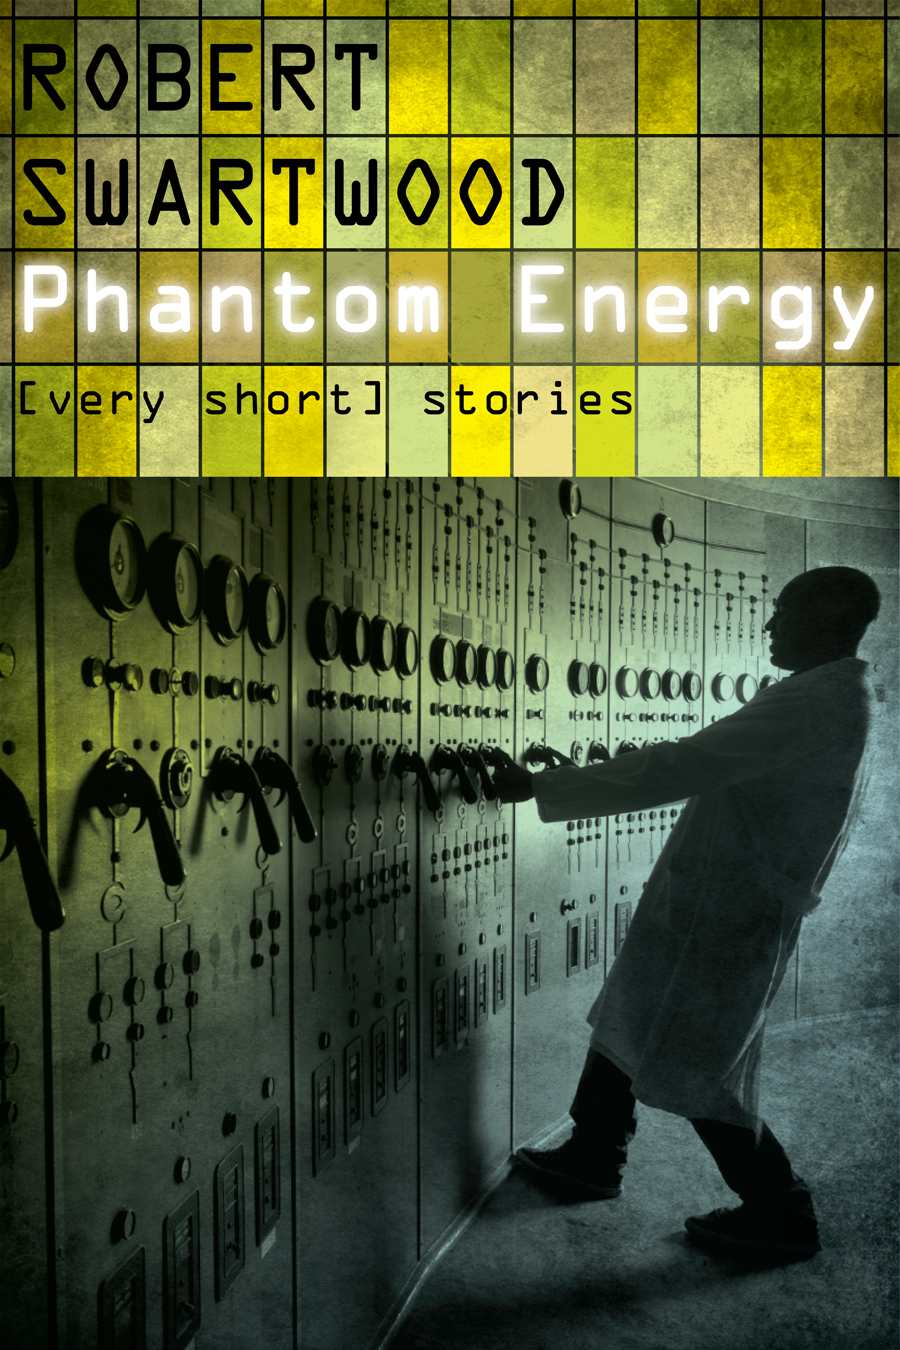 Phantom Energy: [Very Short] Stories